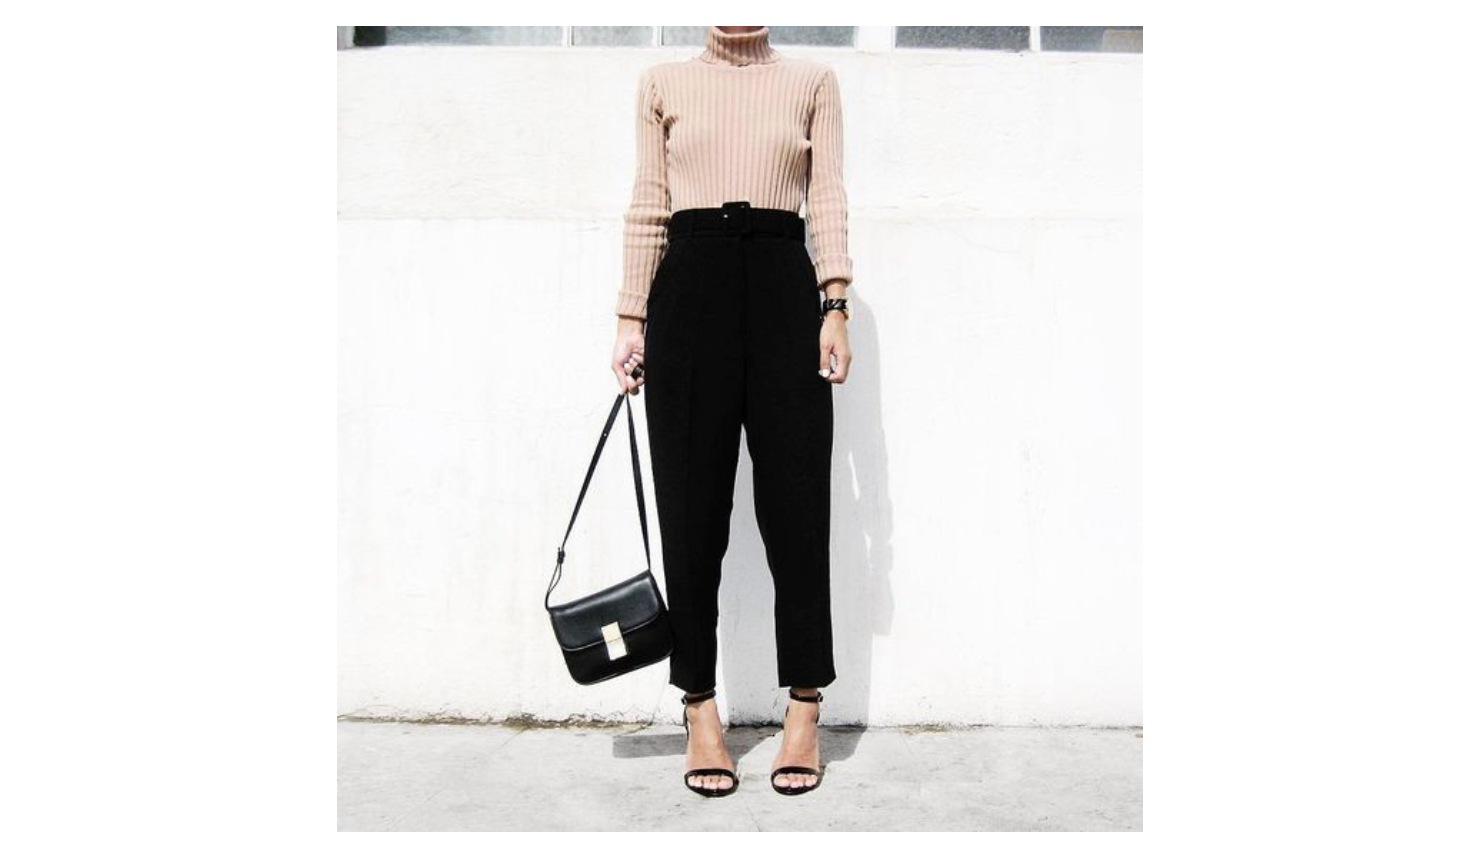 New Love for casual trousers